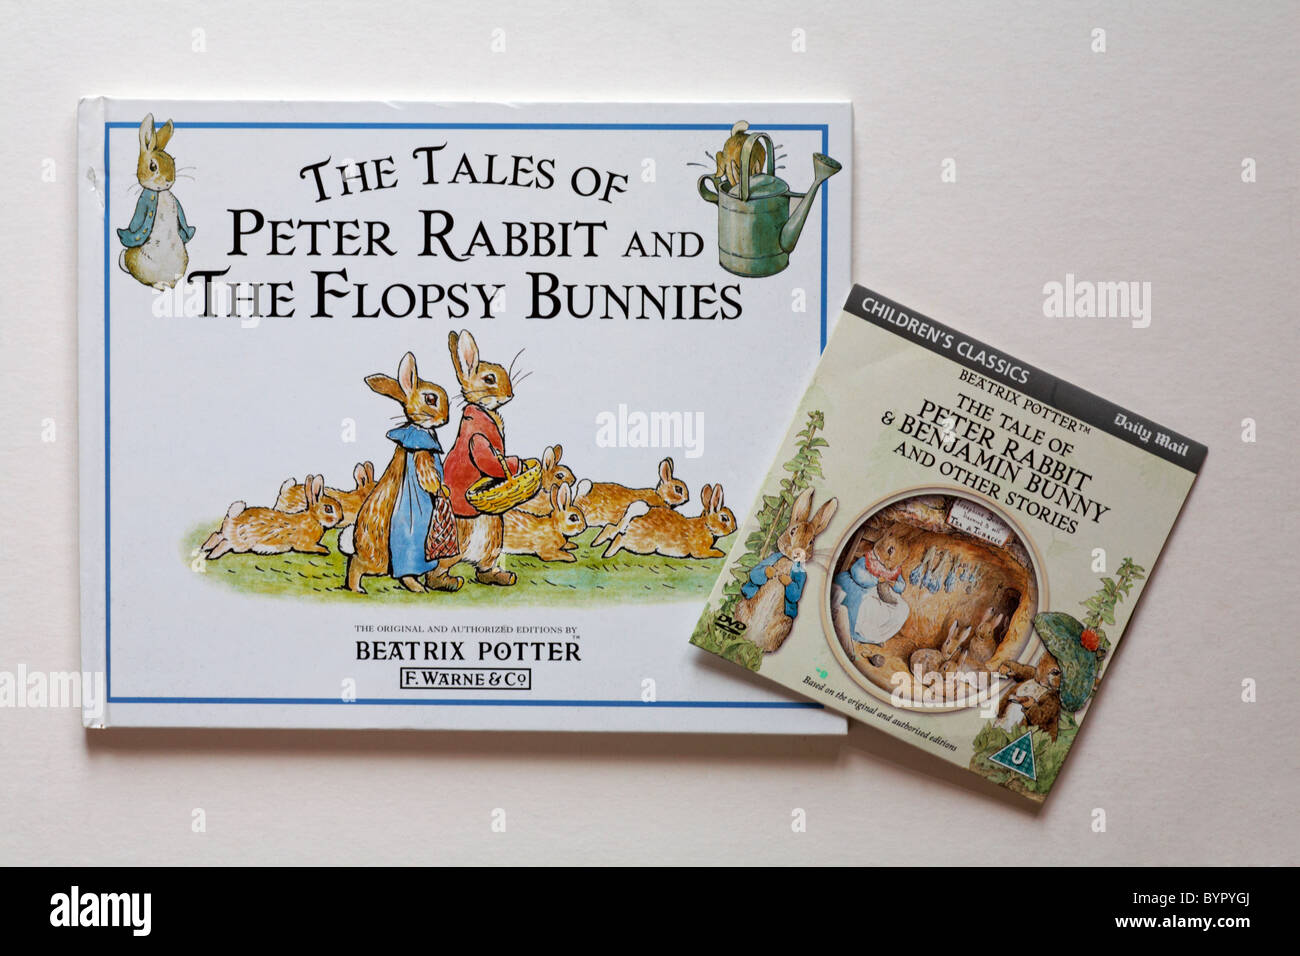 Beatrix Potter book and disc of the Tales of Peter Rabbit isolated on white background - Stock Image